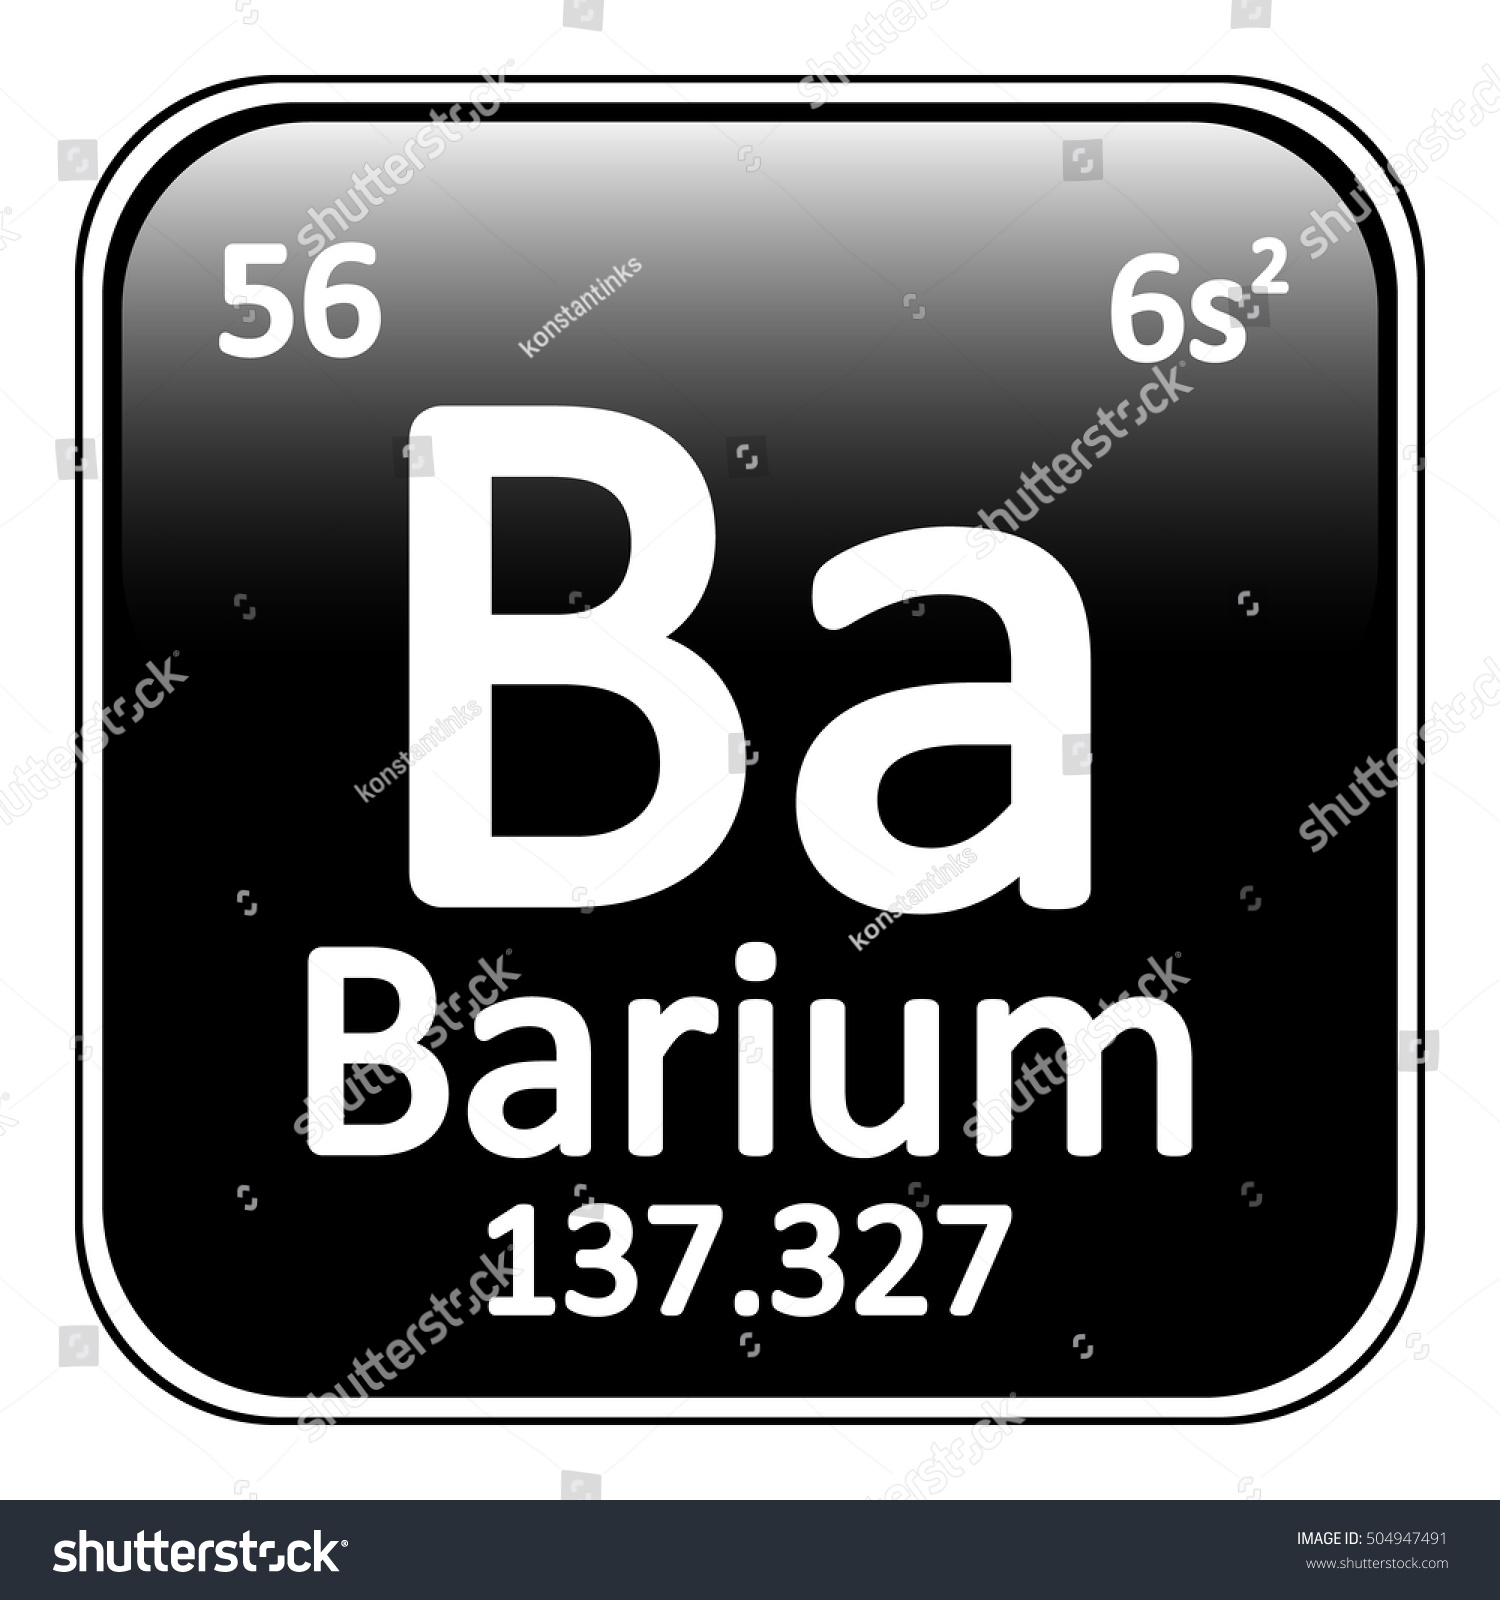 Barium on periodic table images periodic table images periodic table element barium icon on stock vector 504947491 periodic table element barium icon on white gamestrikefo Gallery